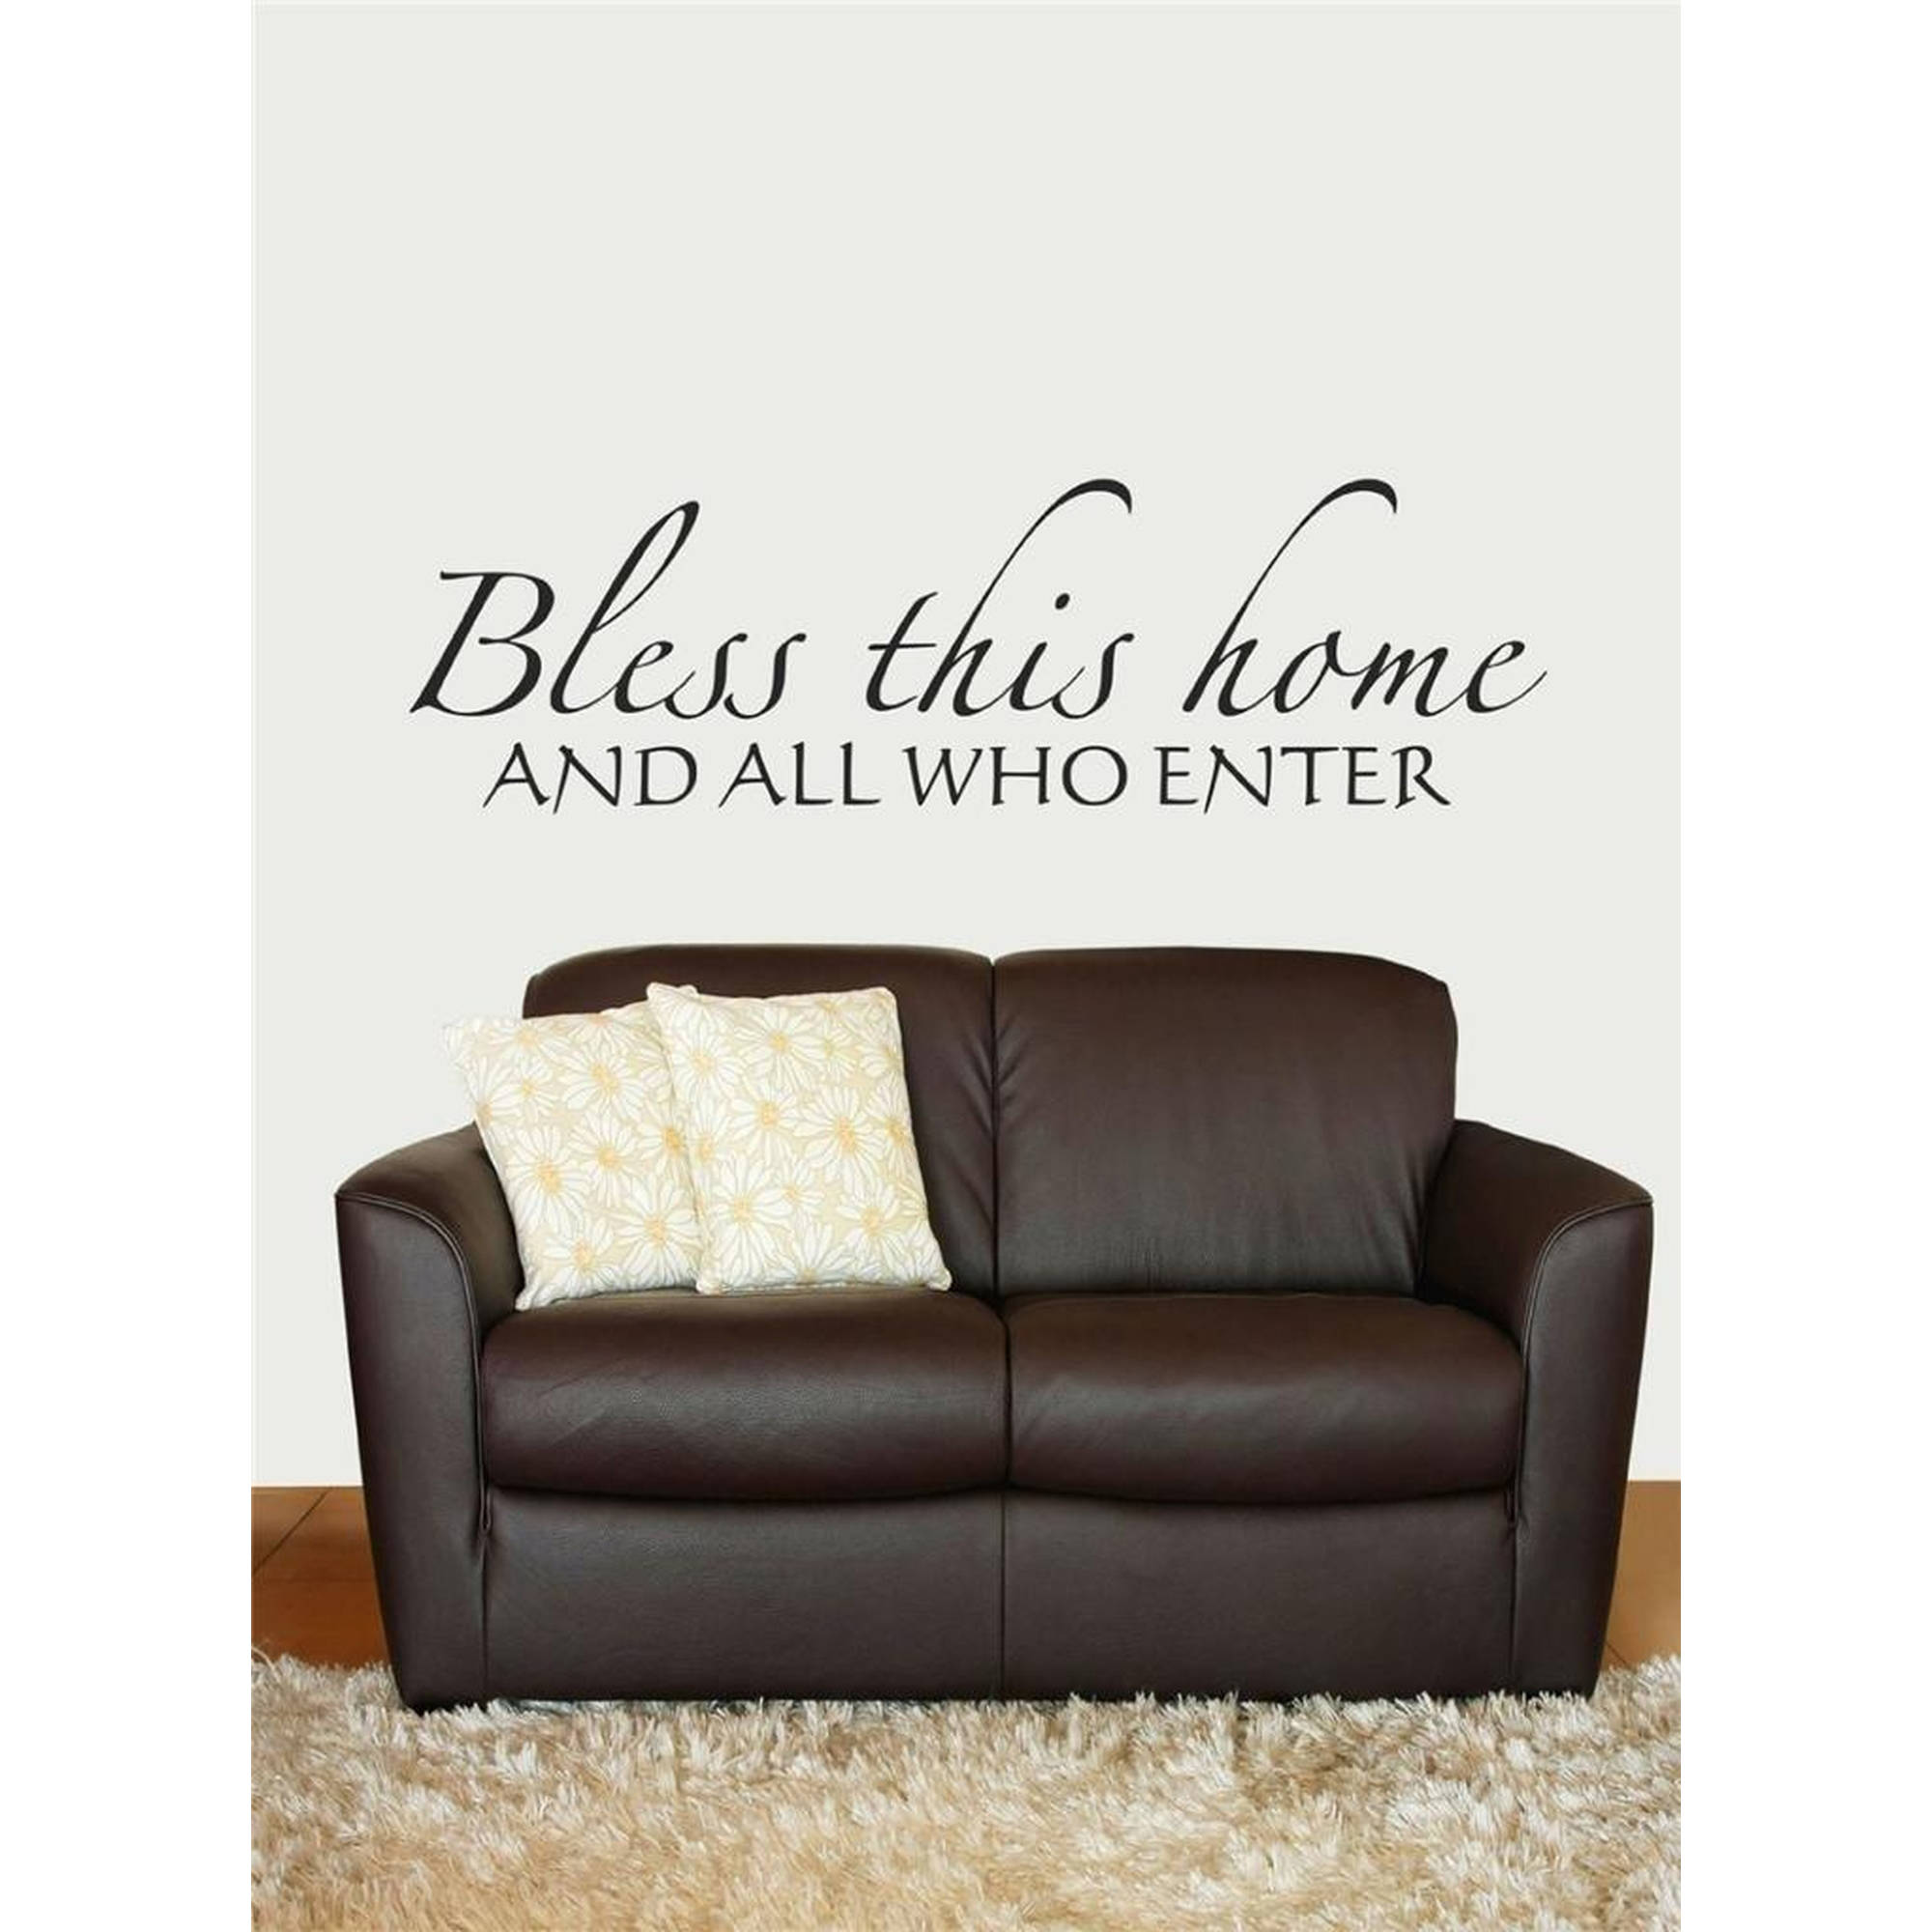 """Bless This Home And All Who Enter Living Room Vinyl Wall Decal, 6"""" x 20"""", Black"""